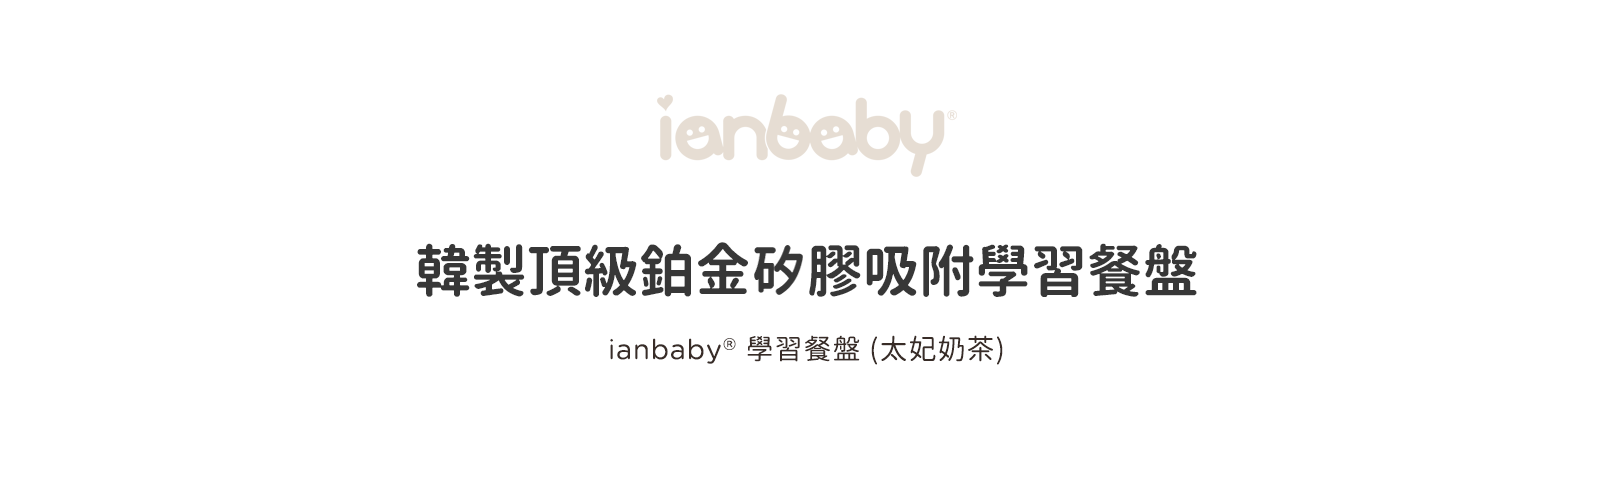 ianbaby-FT-I_01.png